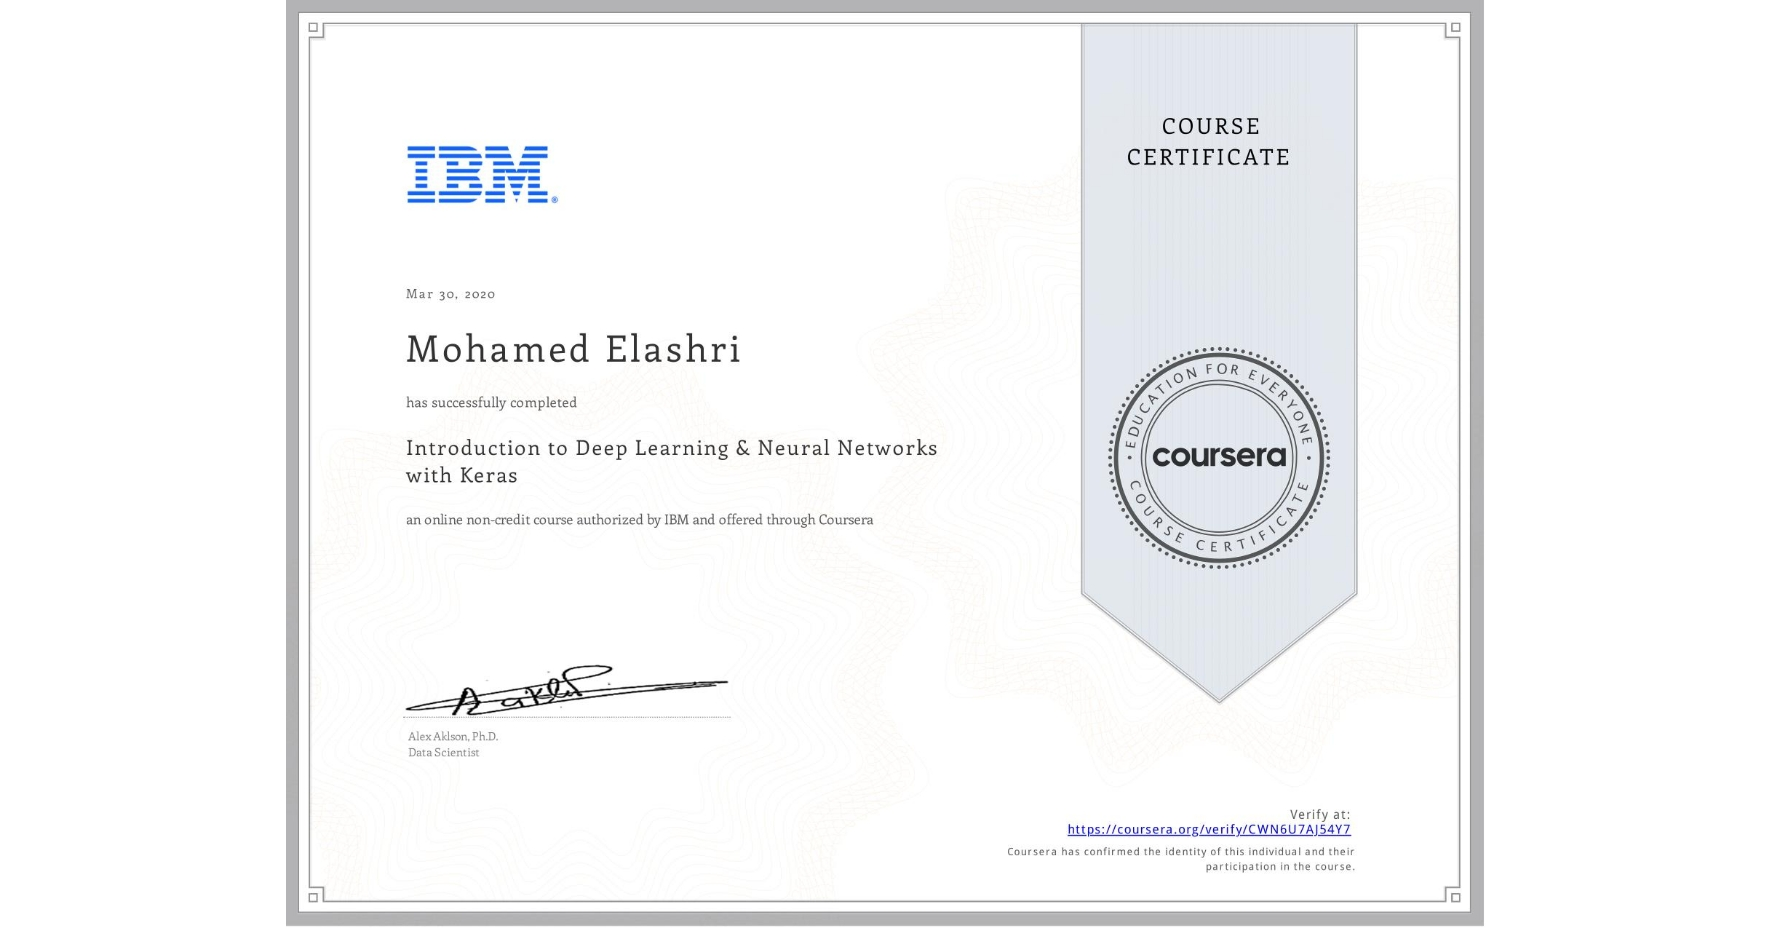 View certificate for Mohamed Elashri, Introduction to Deep Learning & Neural Networks with Keras, an online non-credit course authorized by IBM and offered through Coursera